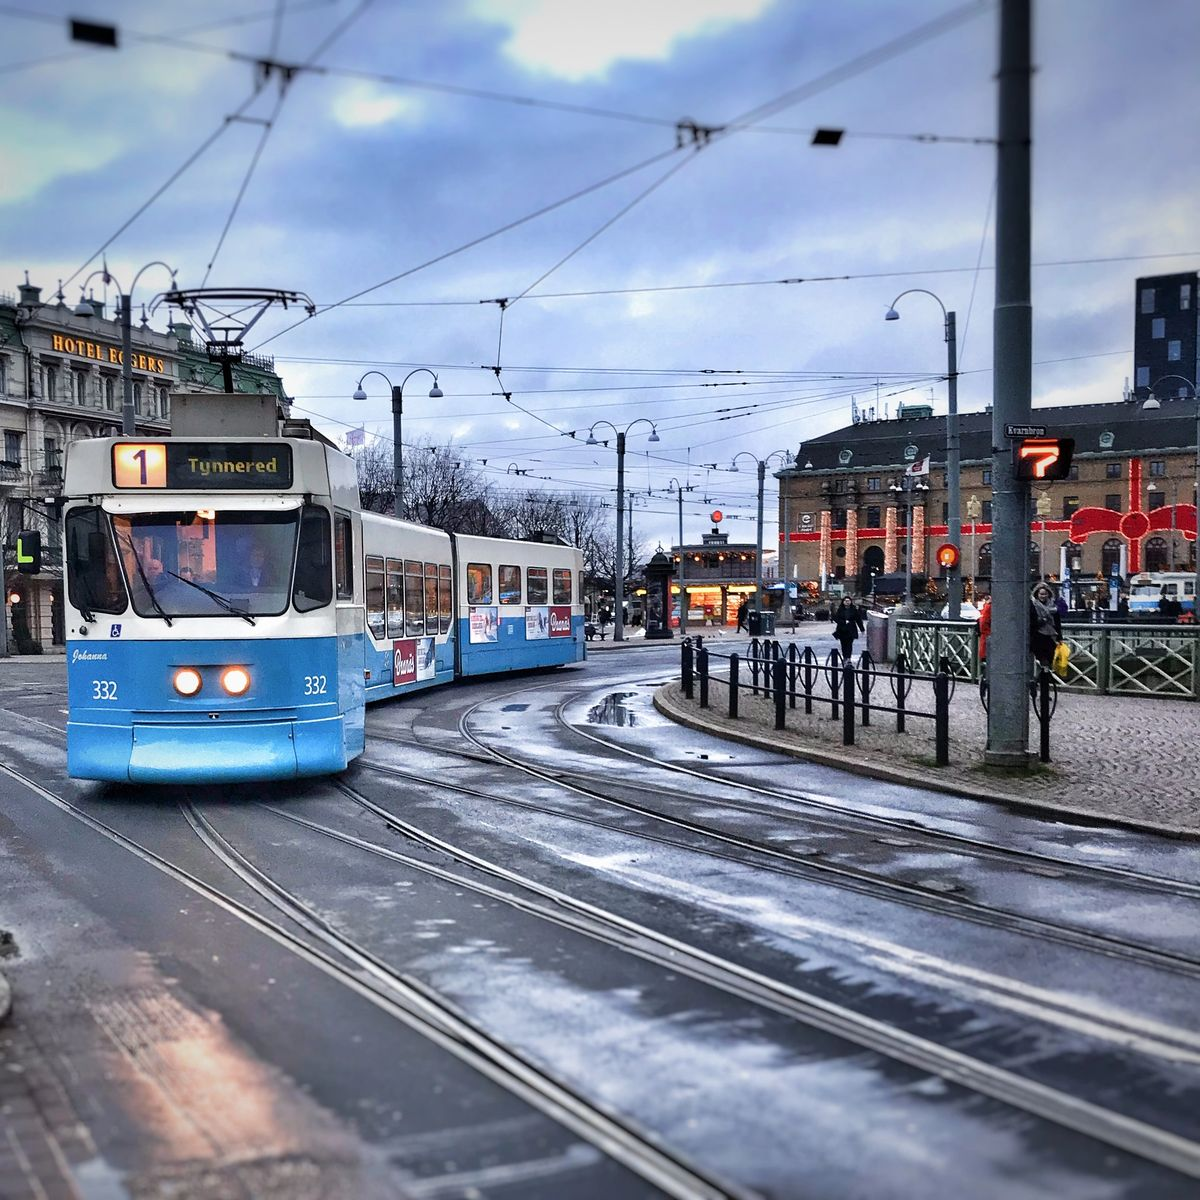 Gothenburg city centre and tram station